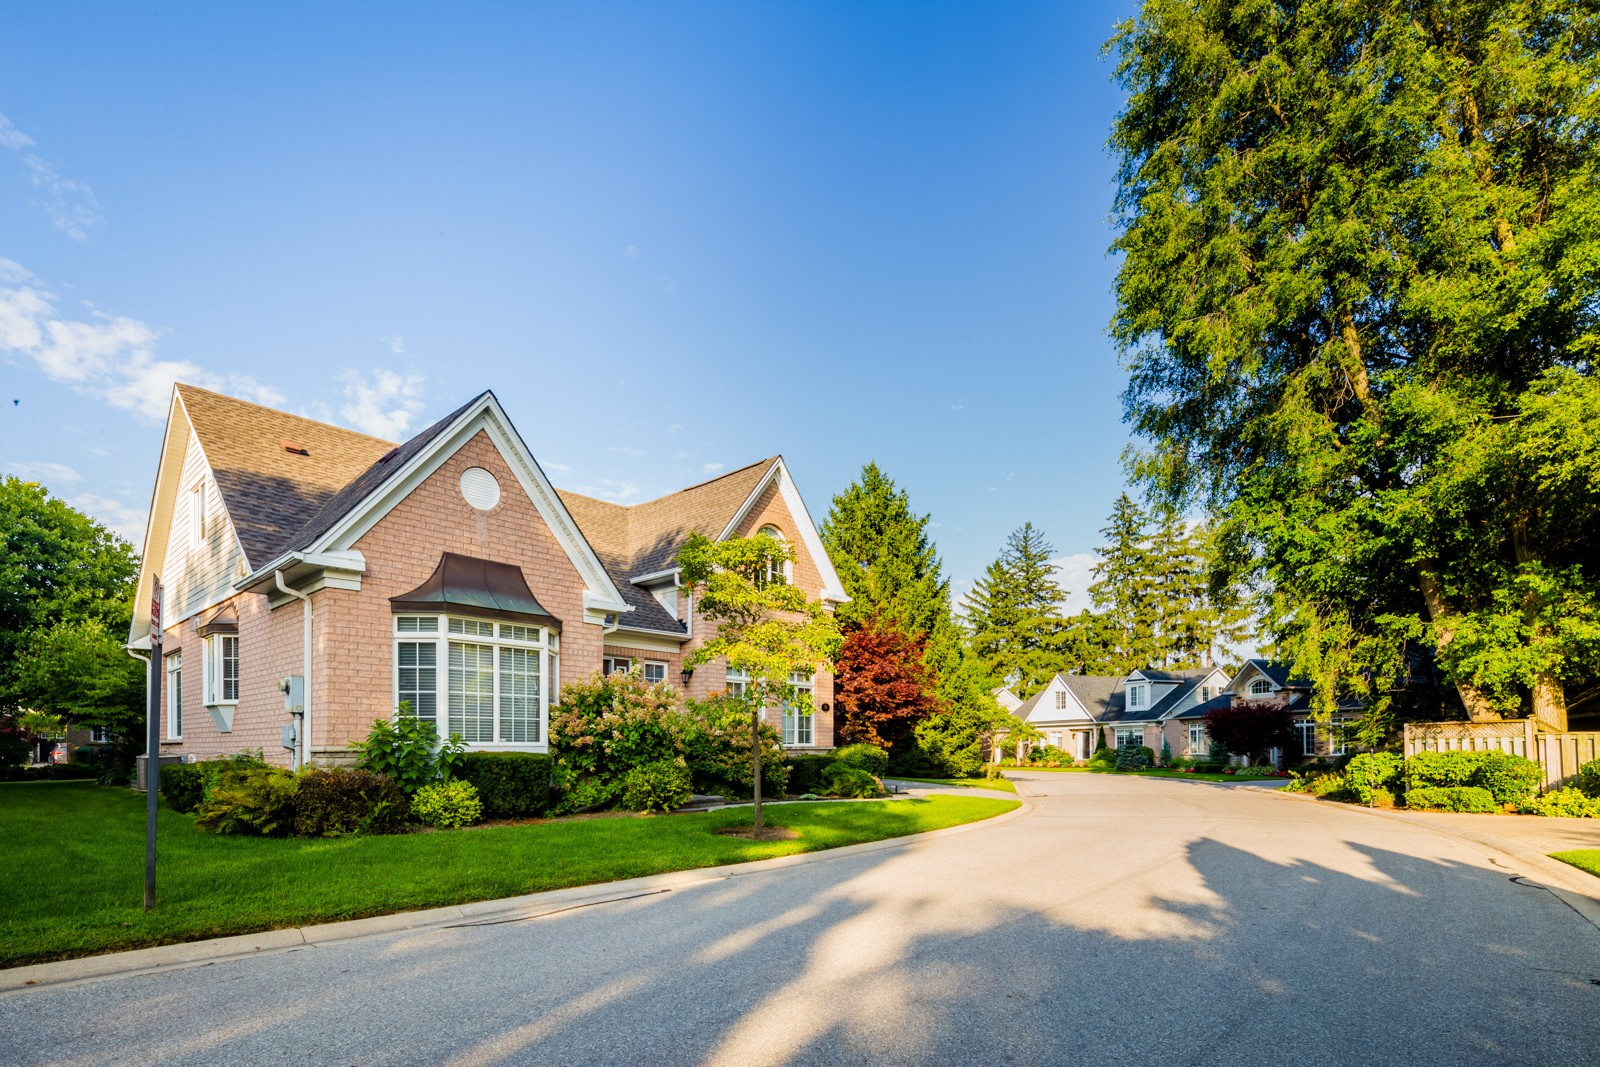 The Garden Homes of Lorne Park at 1405 Lorne Park Rd, Mississauga 1